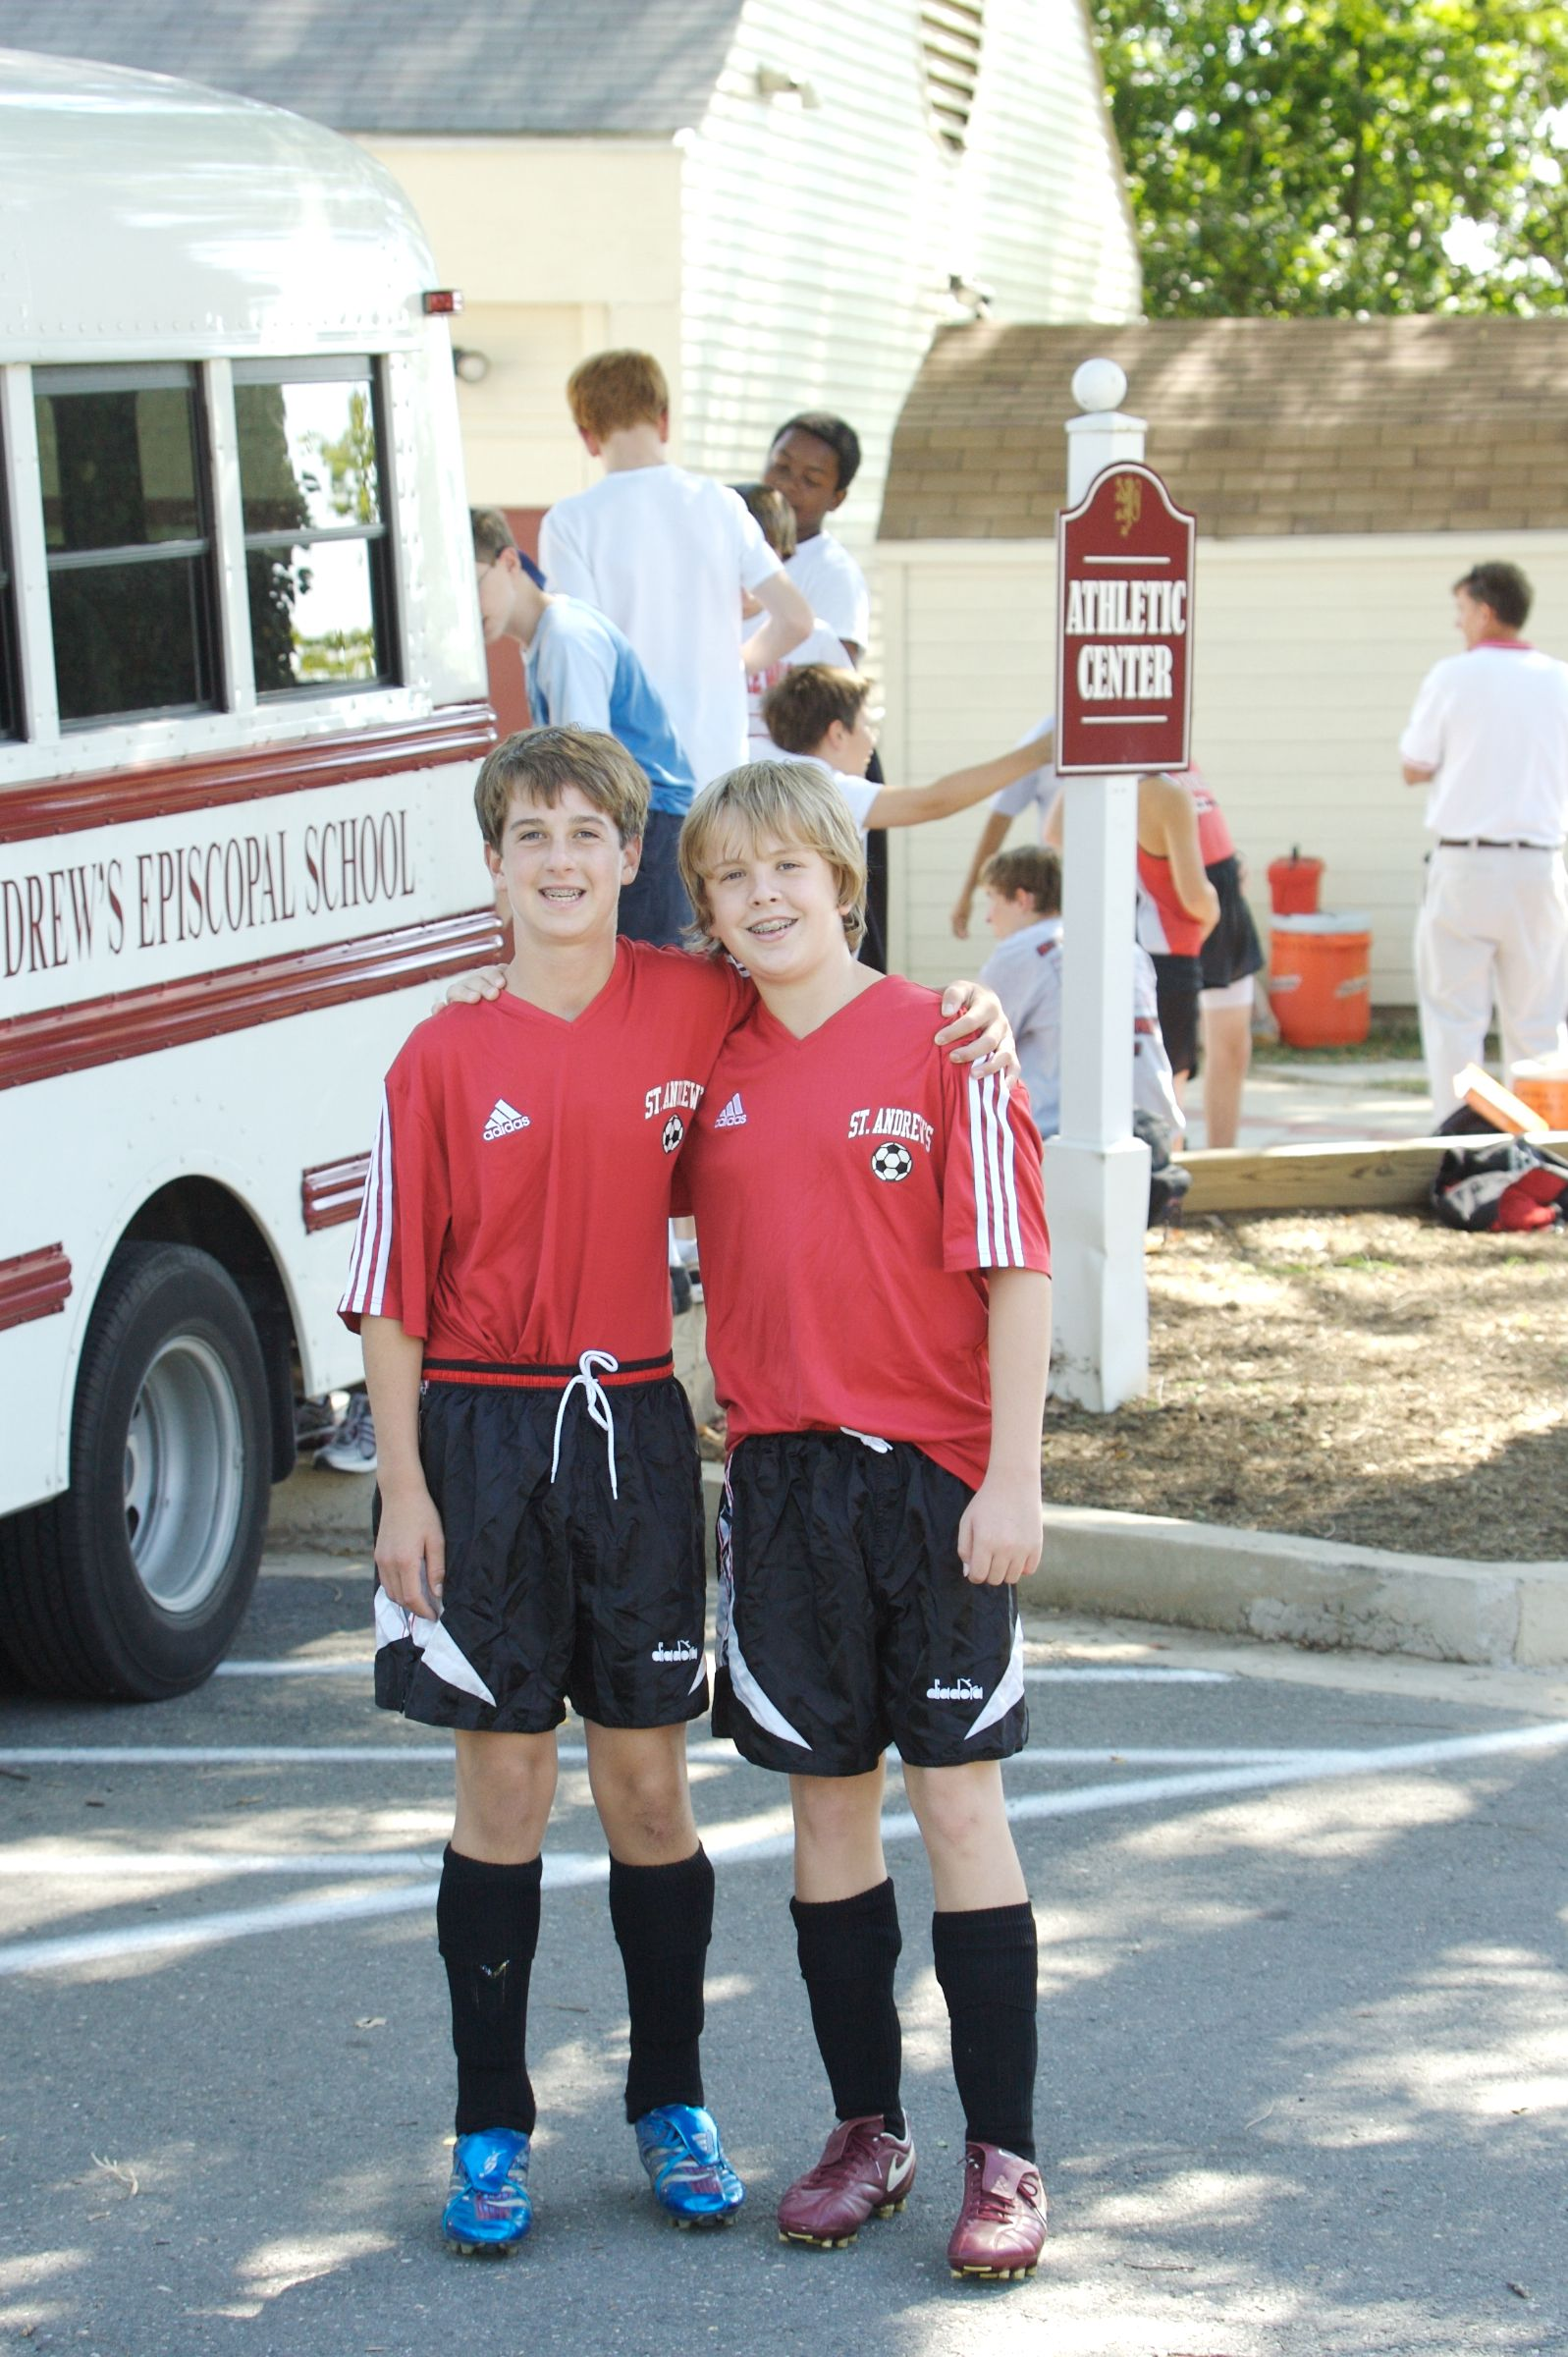 Middle School students on soccer team posing for photo - St. Andrew's Episcopal School